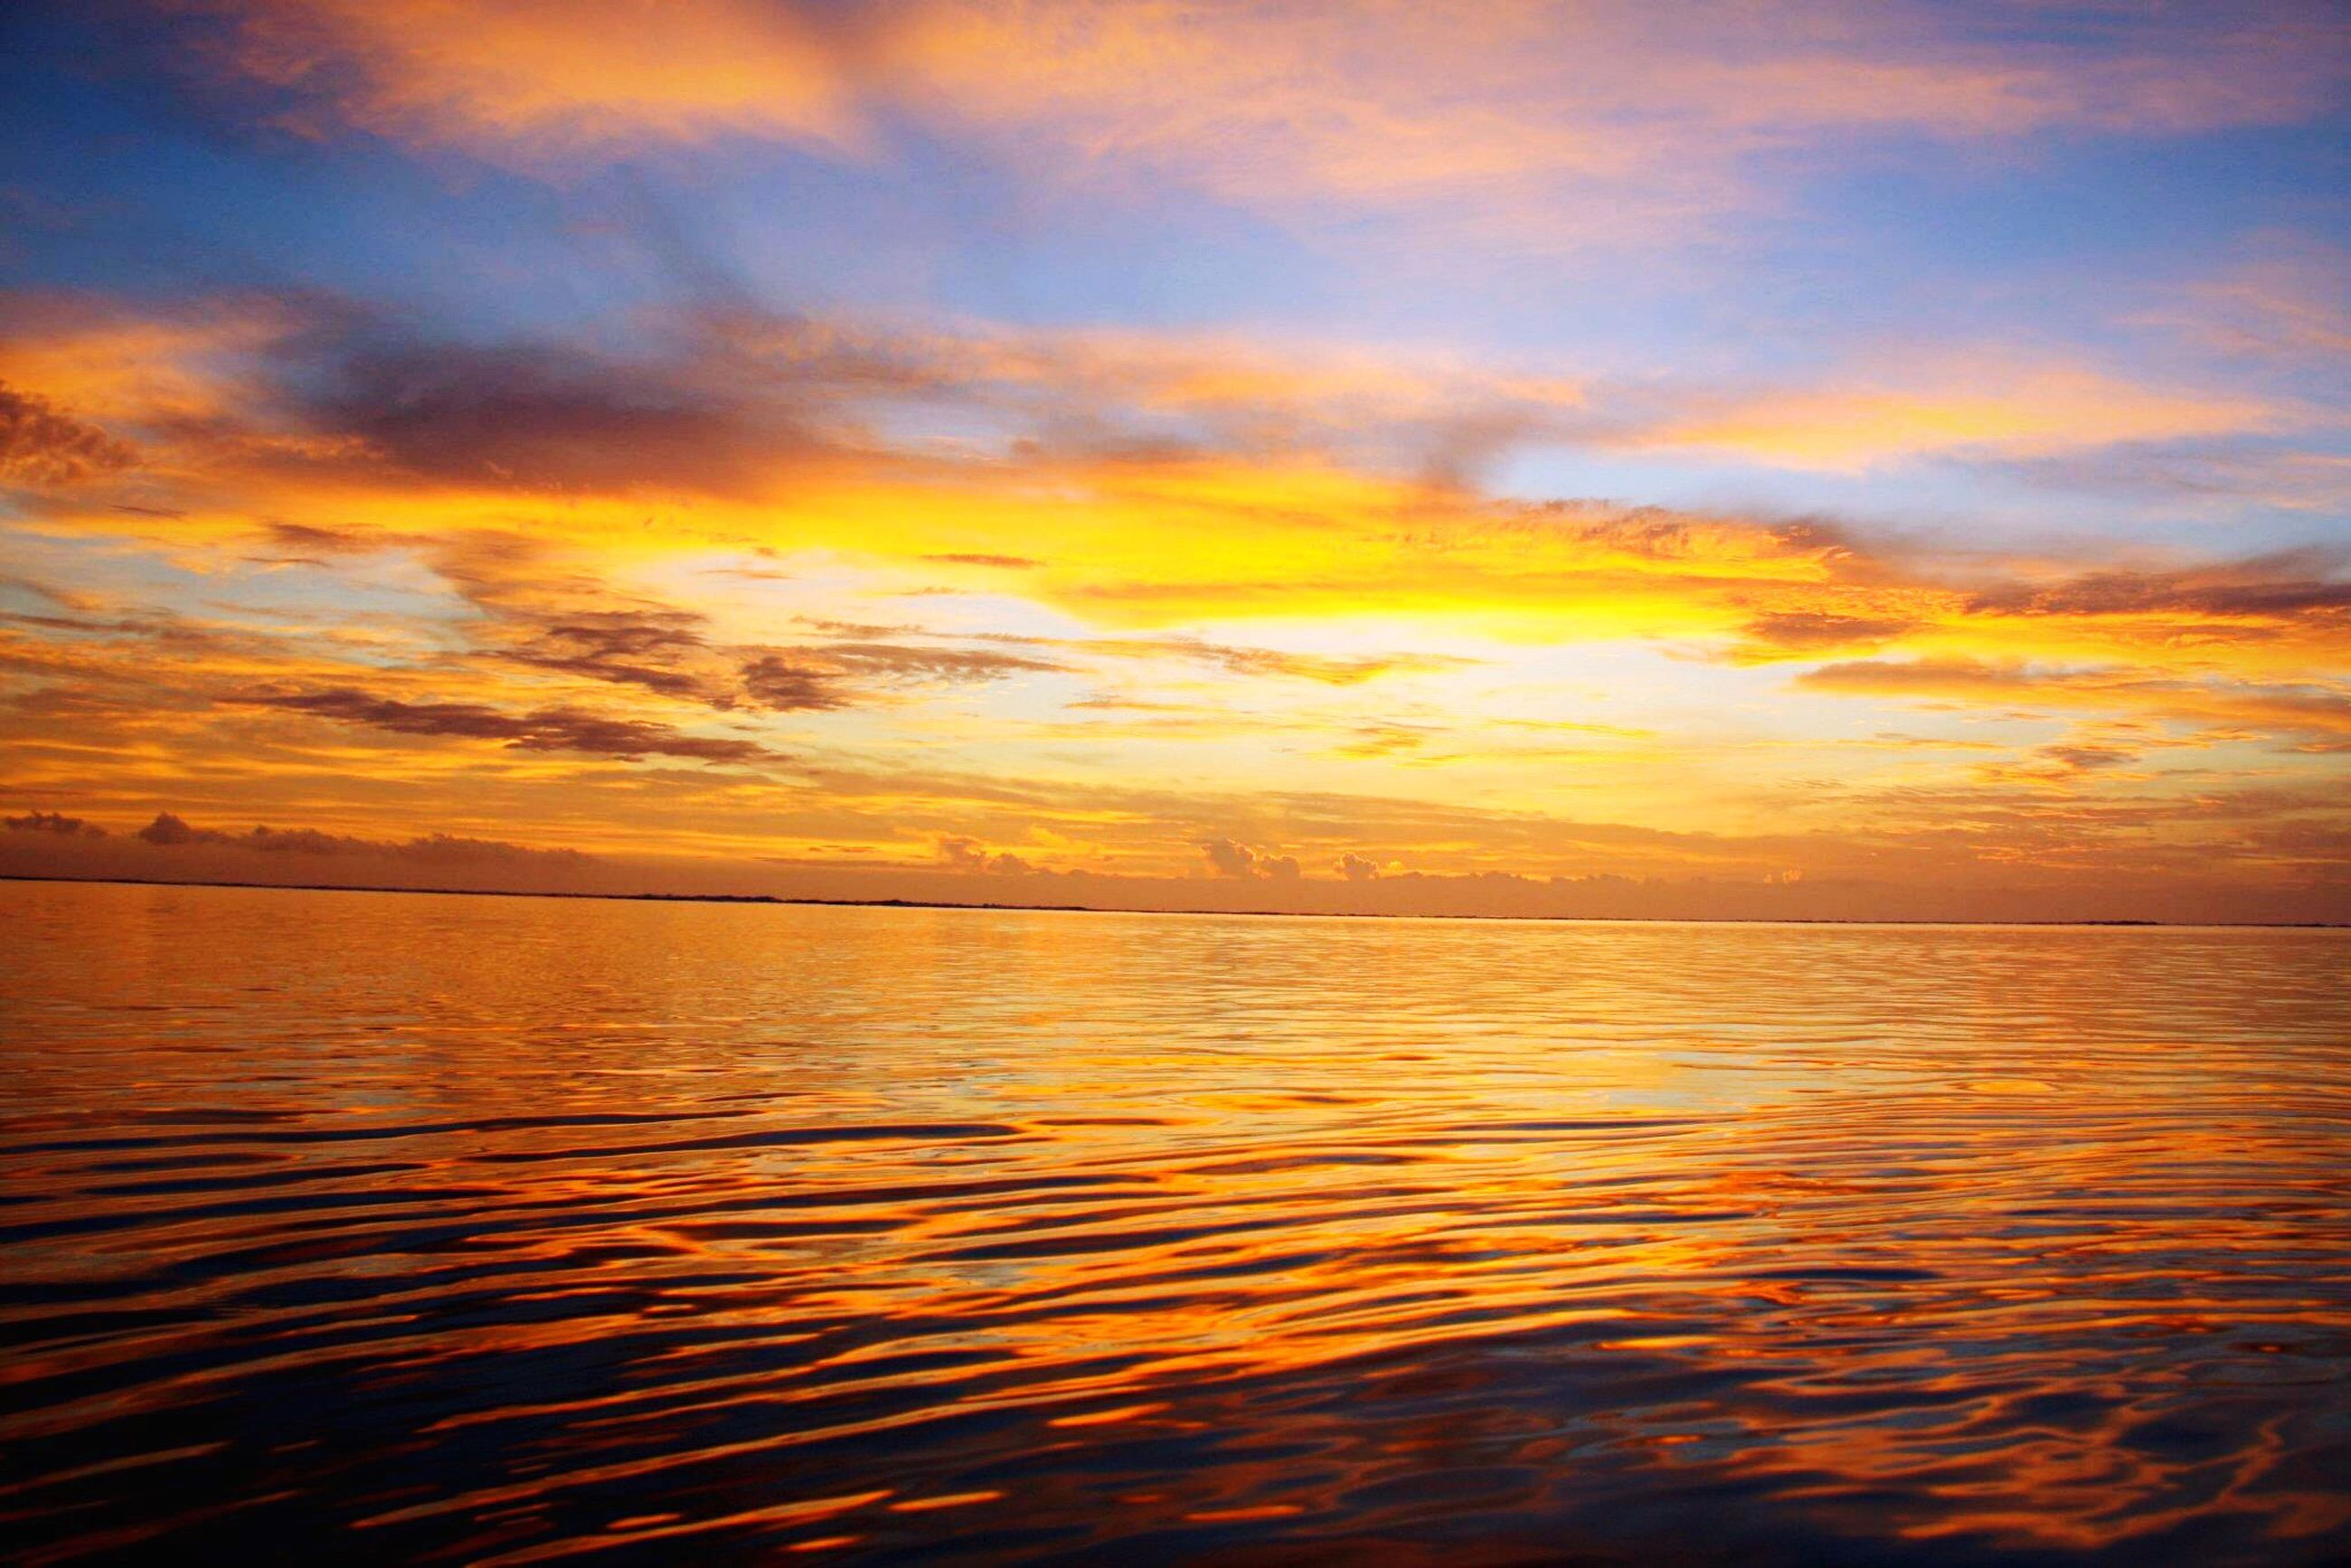 sunset, beauty in nature, orange color, nature, water, dramatic sky, sky, tranquility, scenics, tranquil scene, idyllic, sea, outdoors, no people